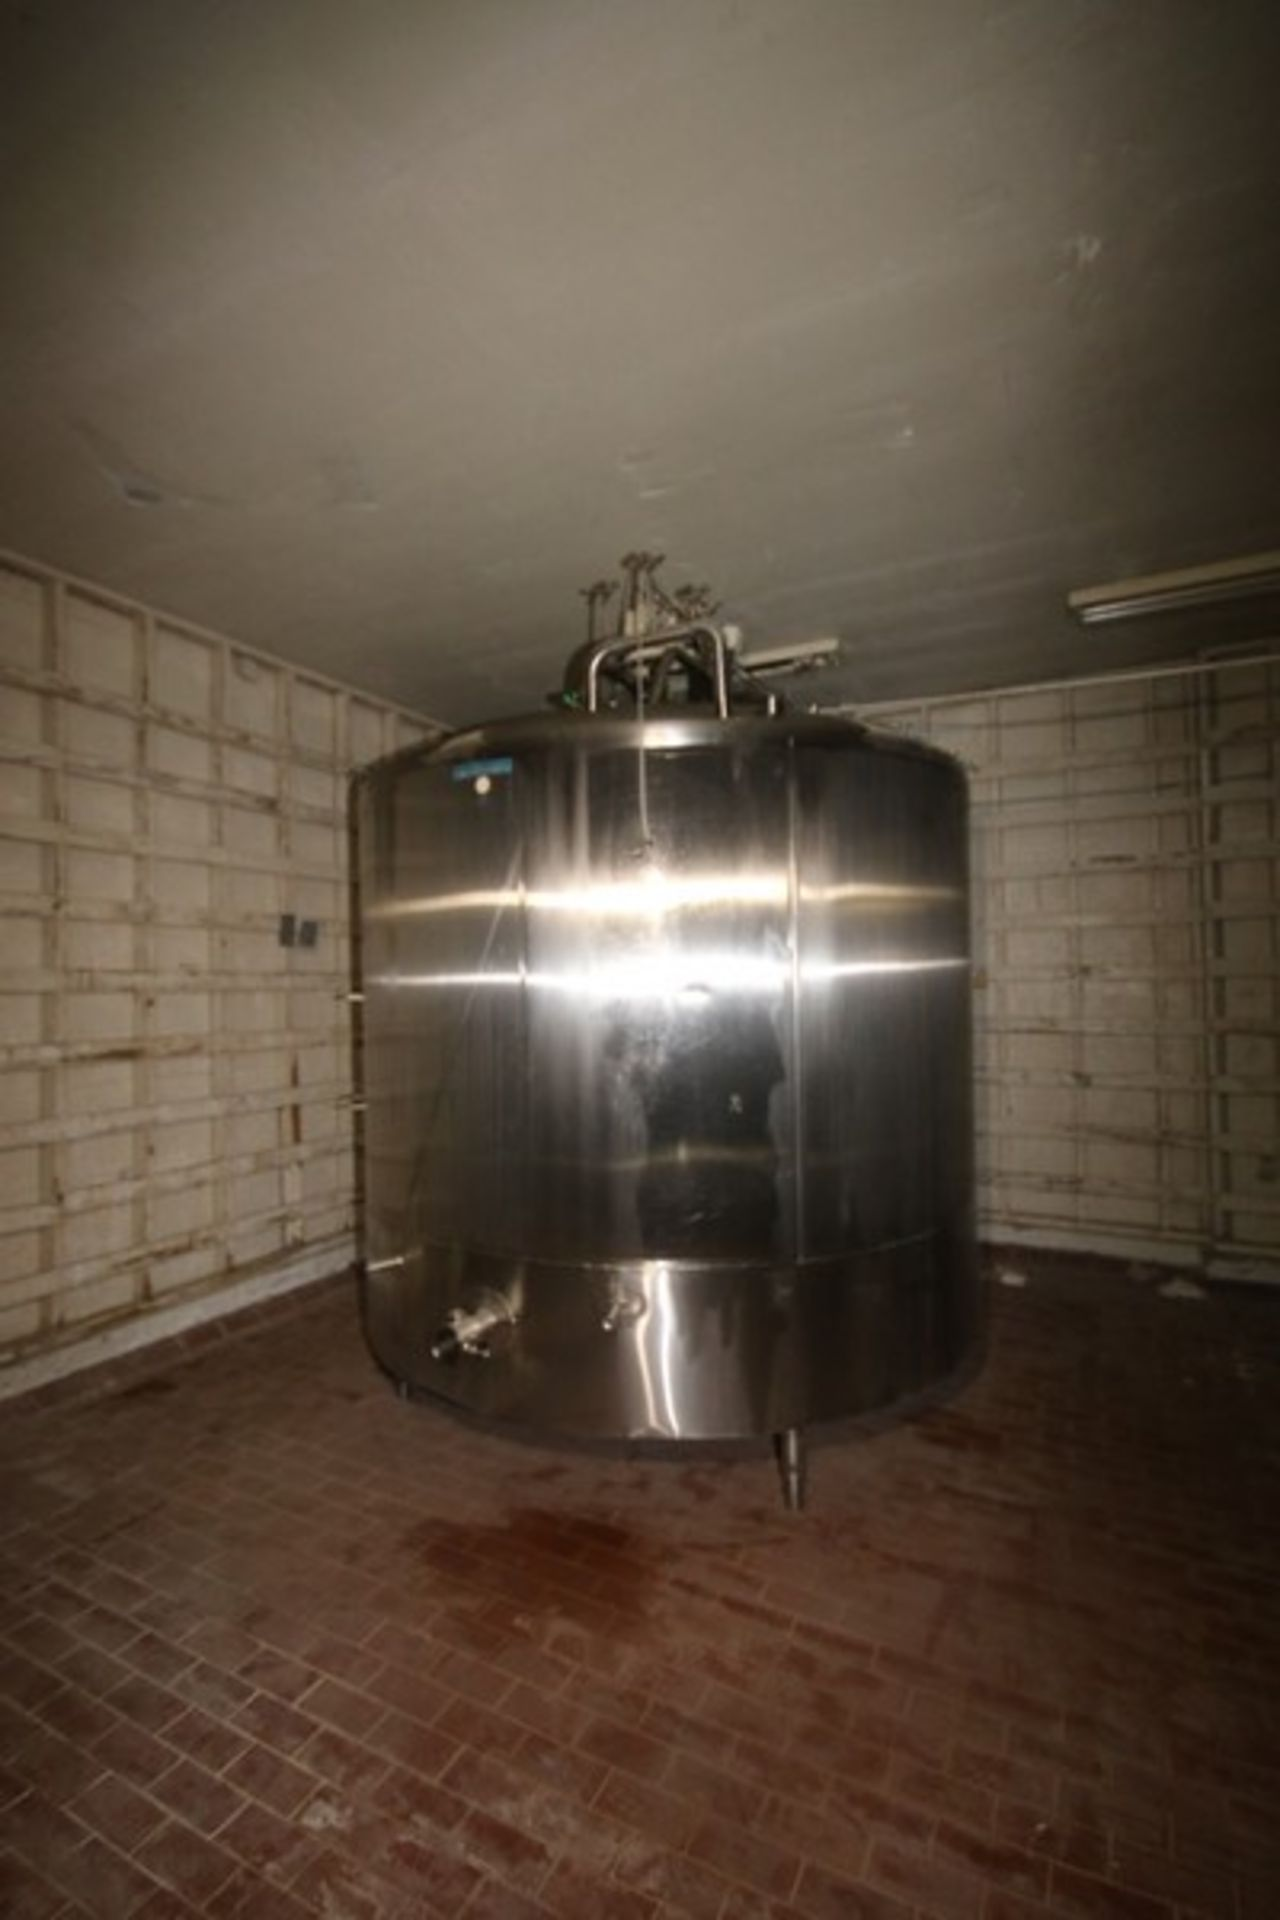 "Mueller Aprox. 2,000 Gal. S/S Processor, Processor Dims.: Aprox. 8' Diameter x 62"" Straight Side"